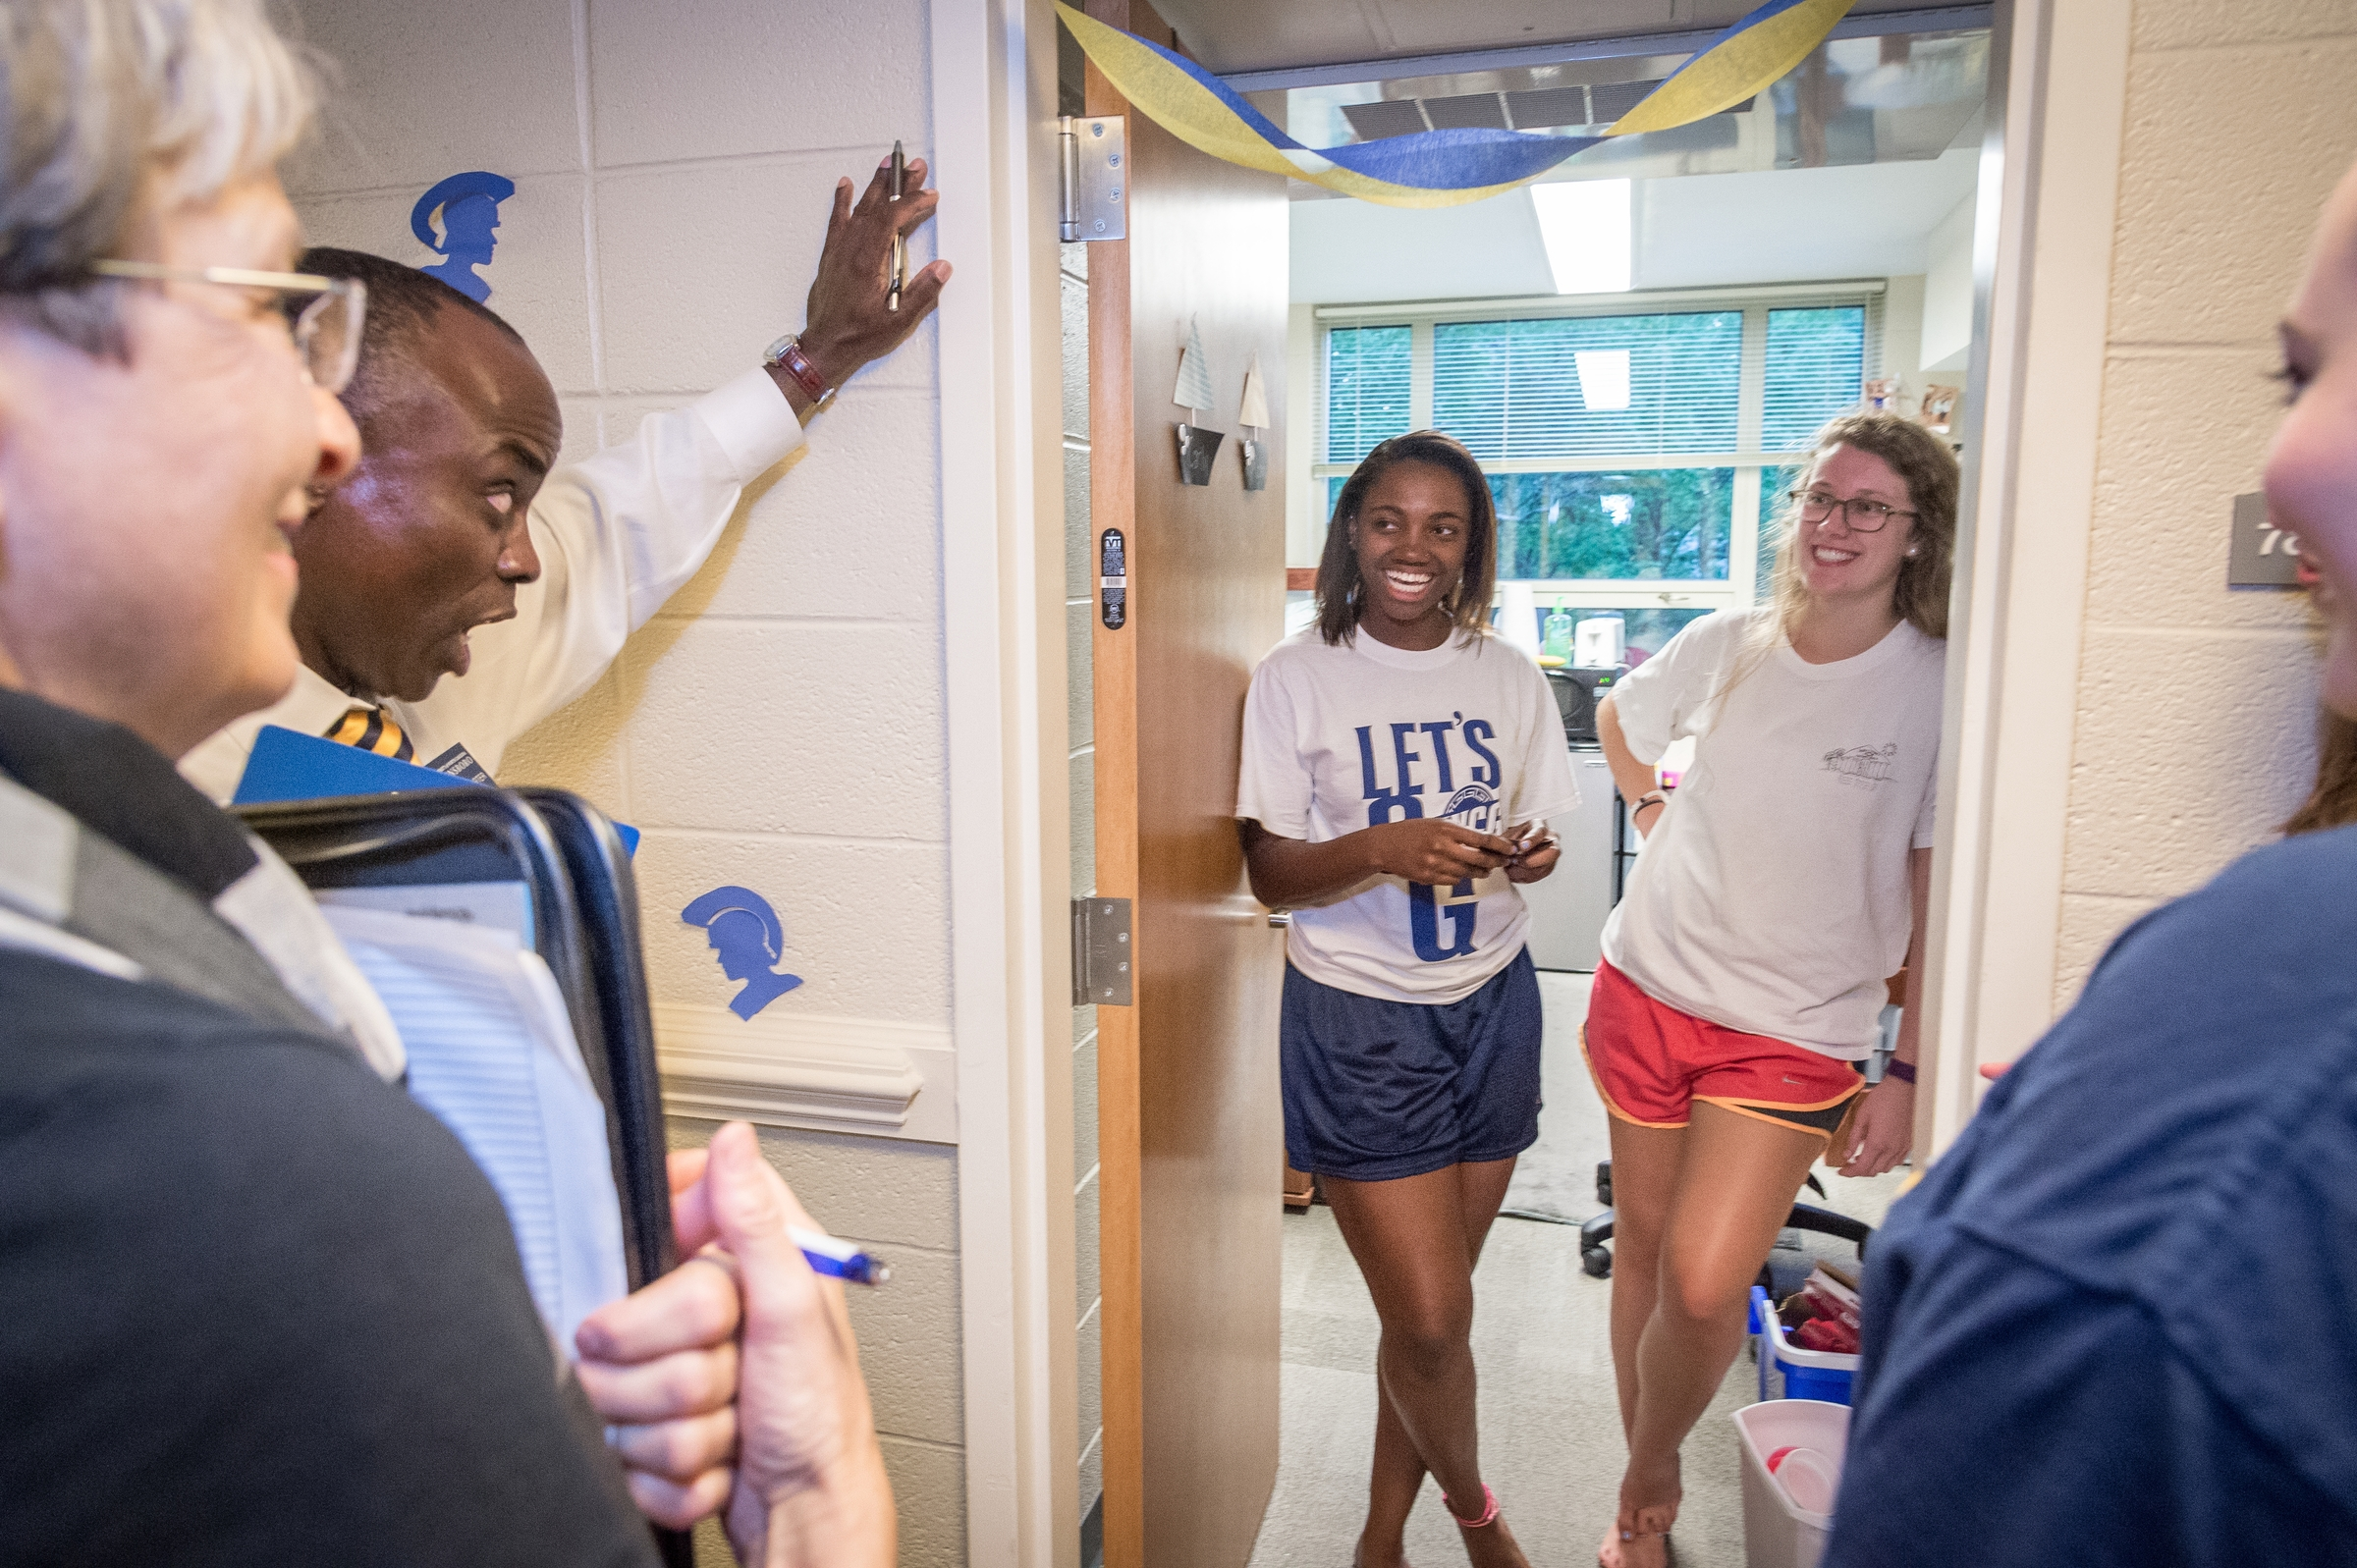 House Calls, where students meet faculty and staff in their homes